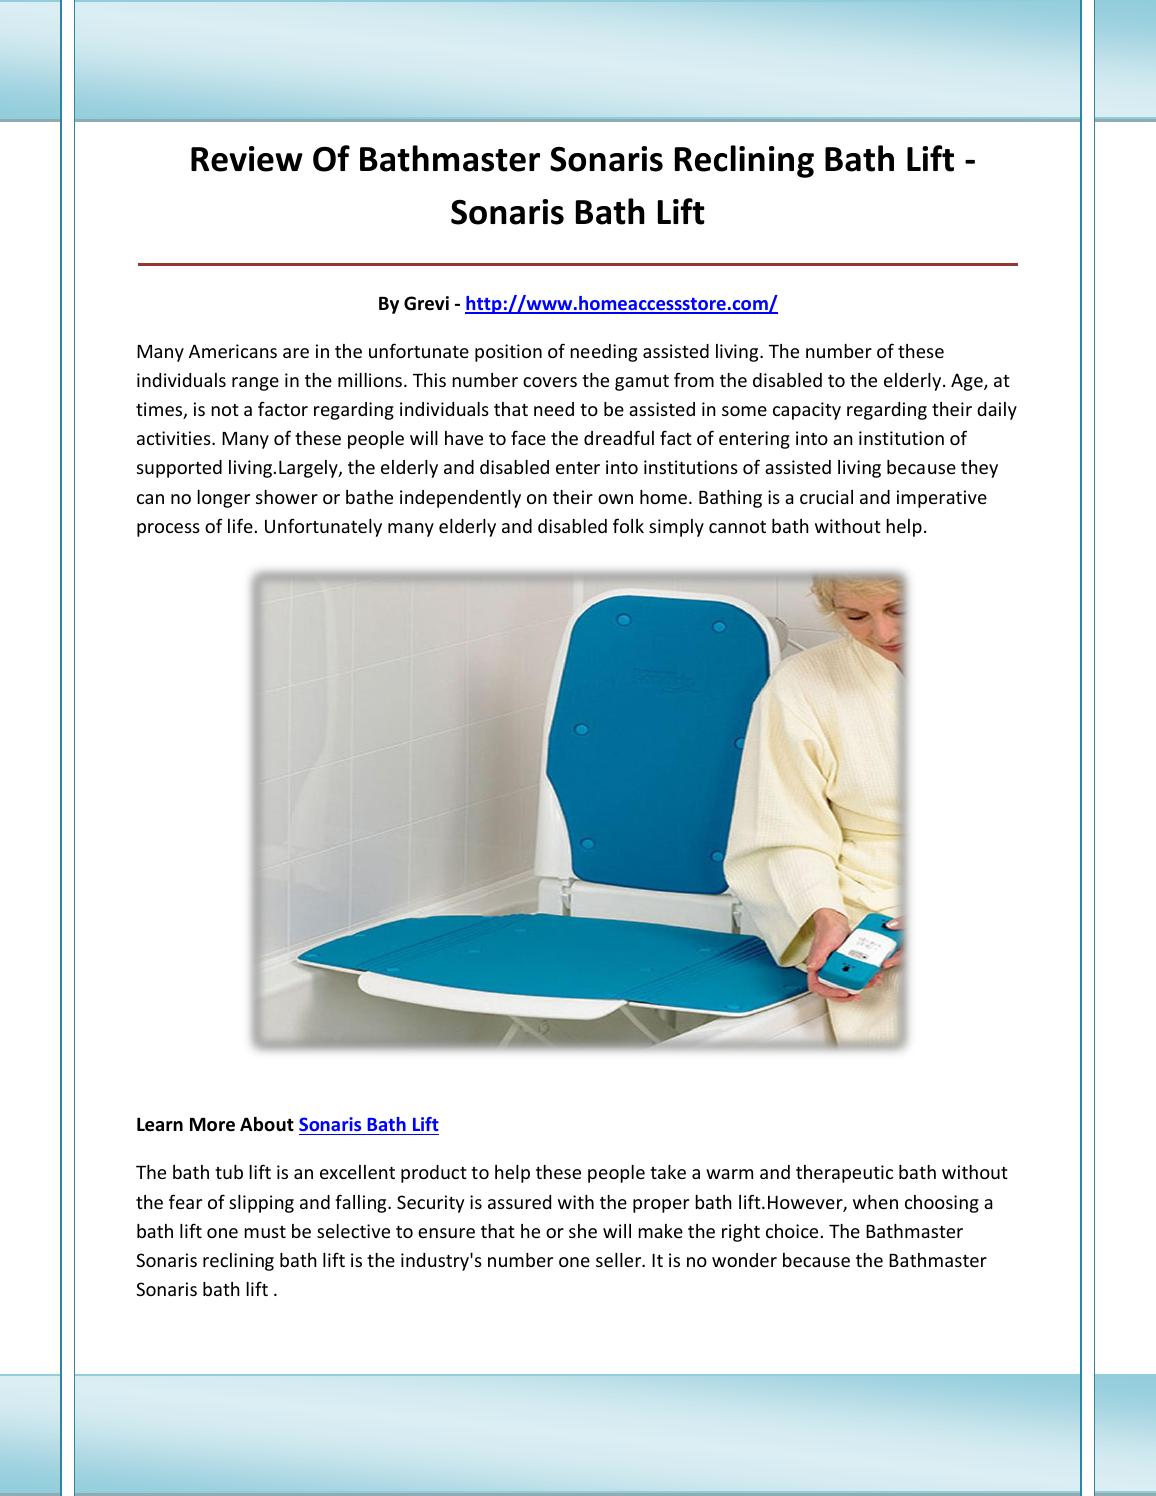 Sonaris bath lift by sonarisbathlift - issuu